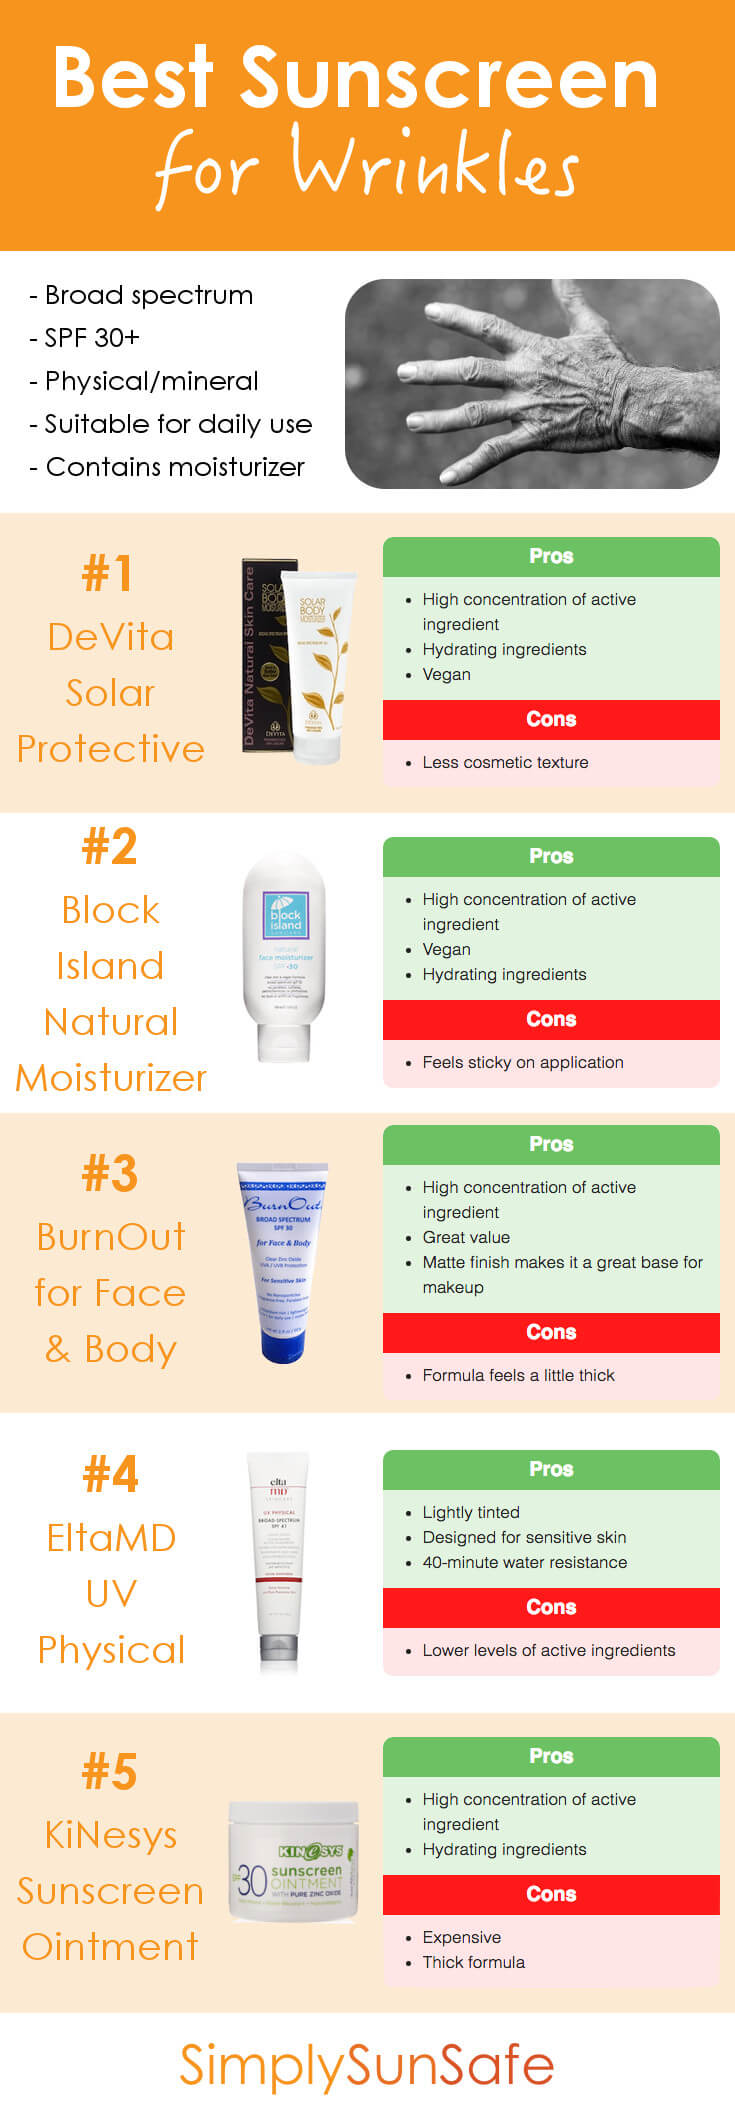 Best Sunscreen for Wrinkles Pinterest